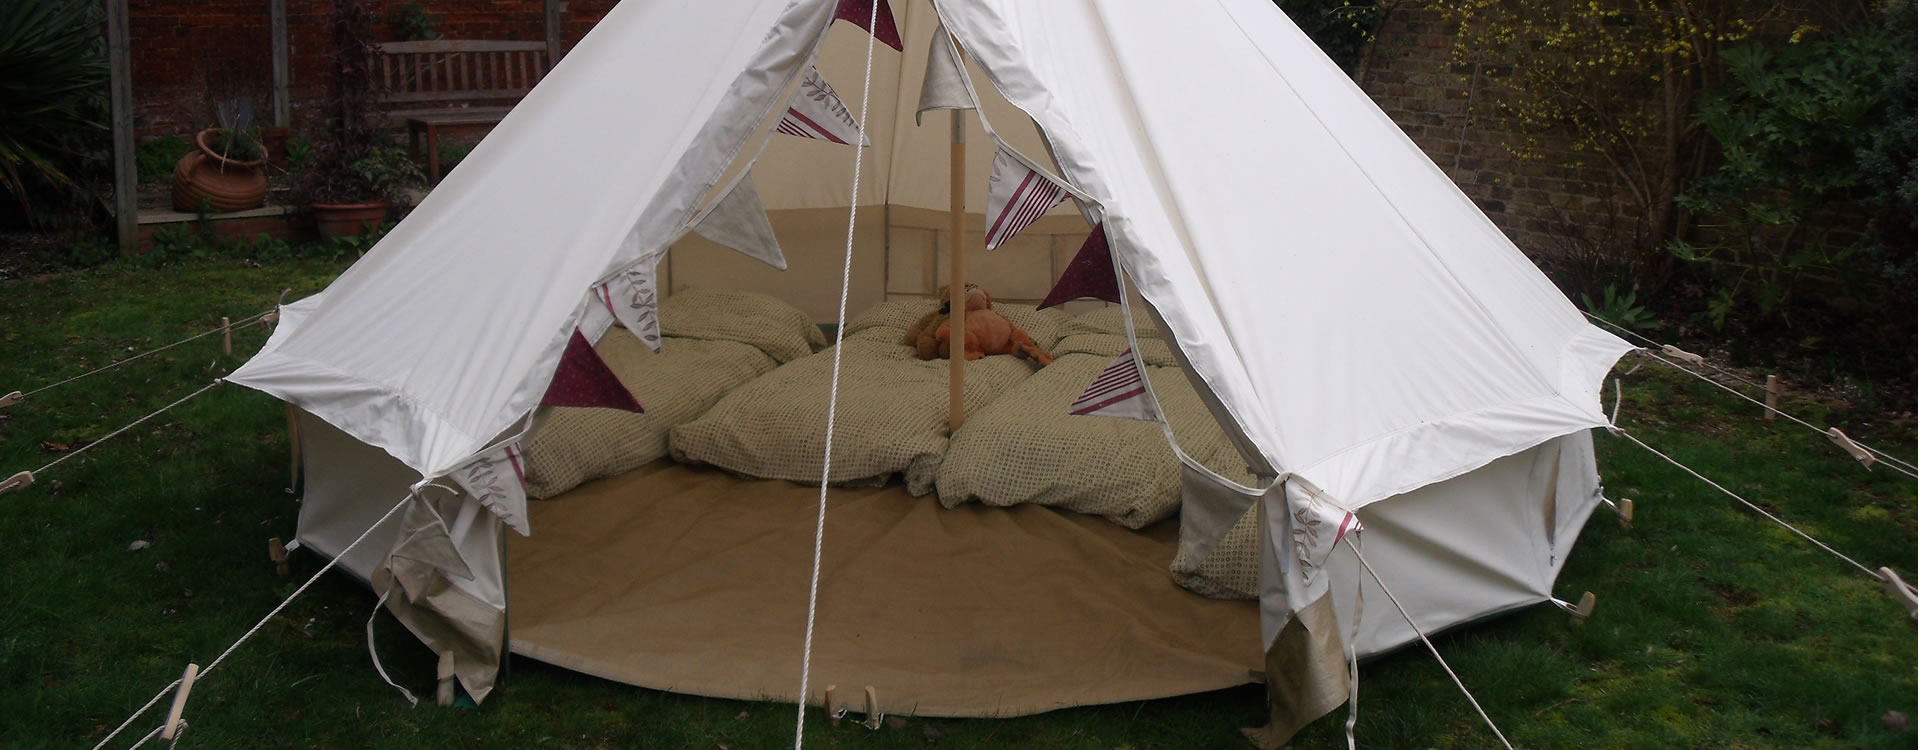 Boutique Camping and Luxury Accommodation hire for parties